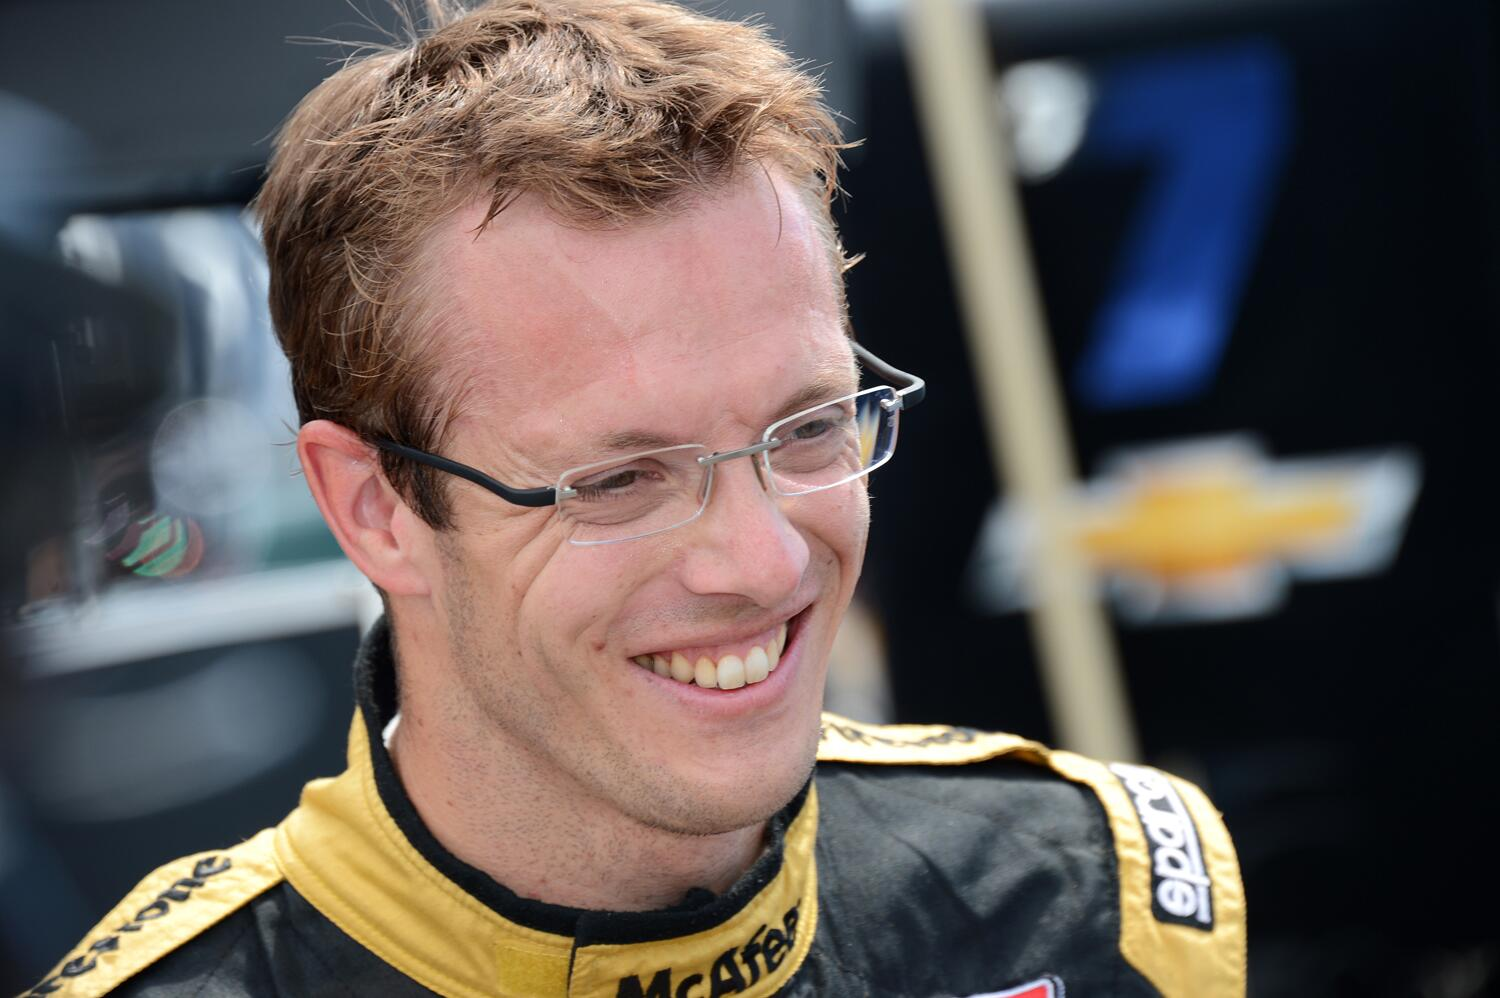 Happy Birthday to @BourdaisOnTrack! Hope it's a good one. #INDYCAR http://t.co/pHKMXa2Eyq